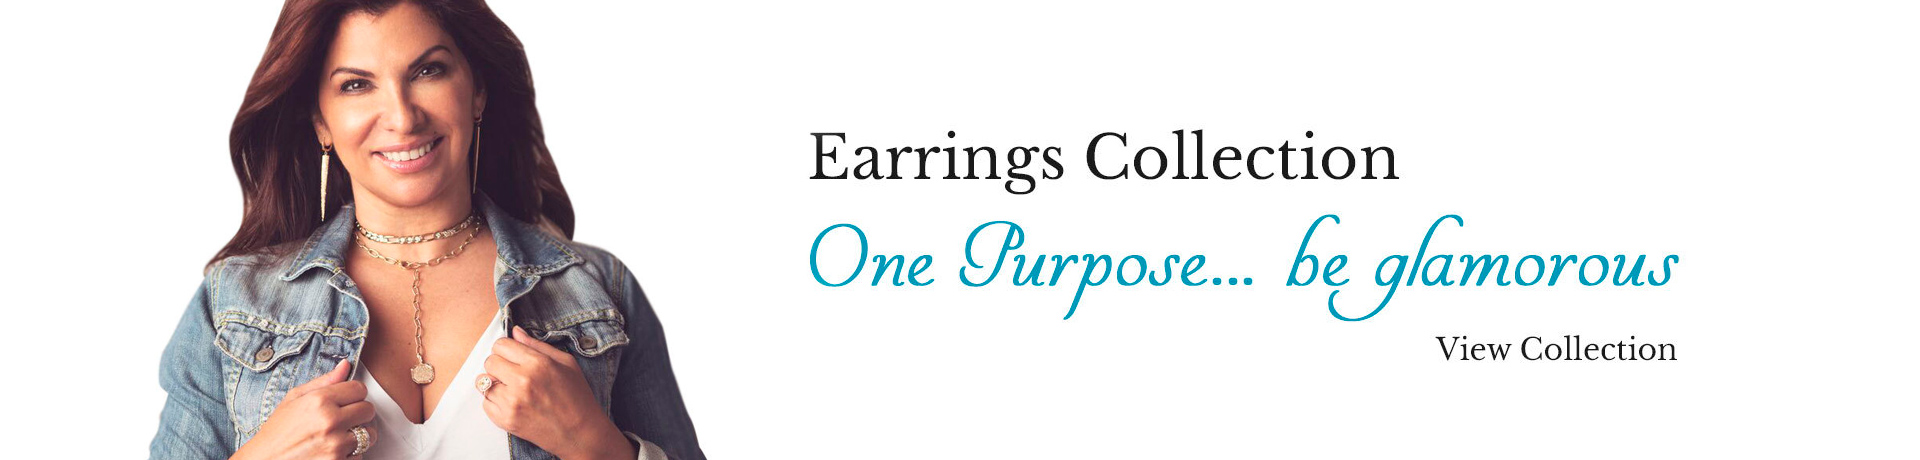 Earrings Collection